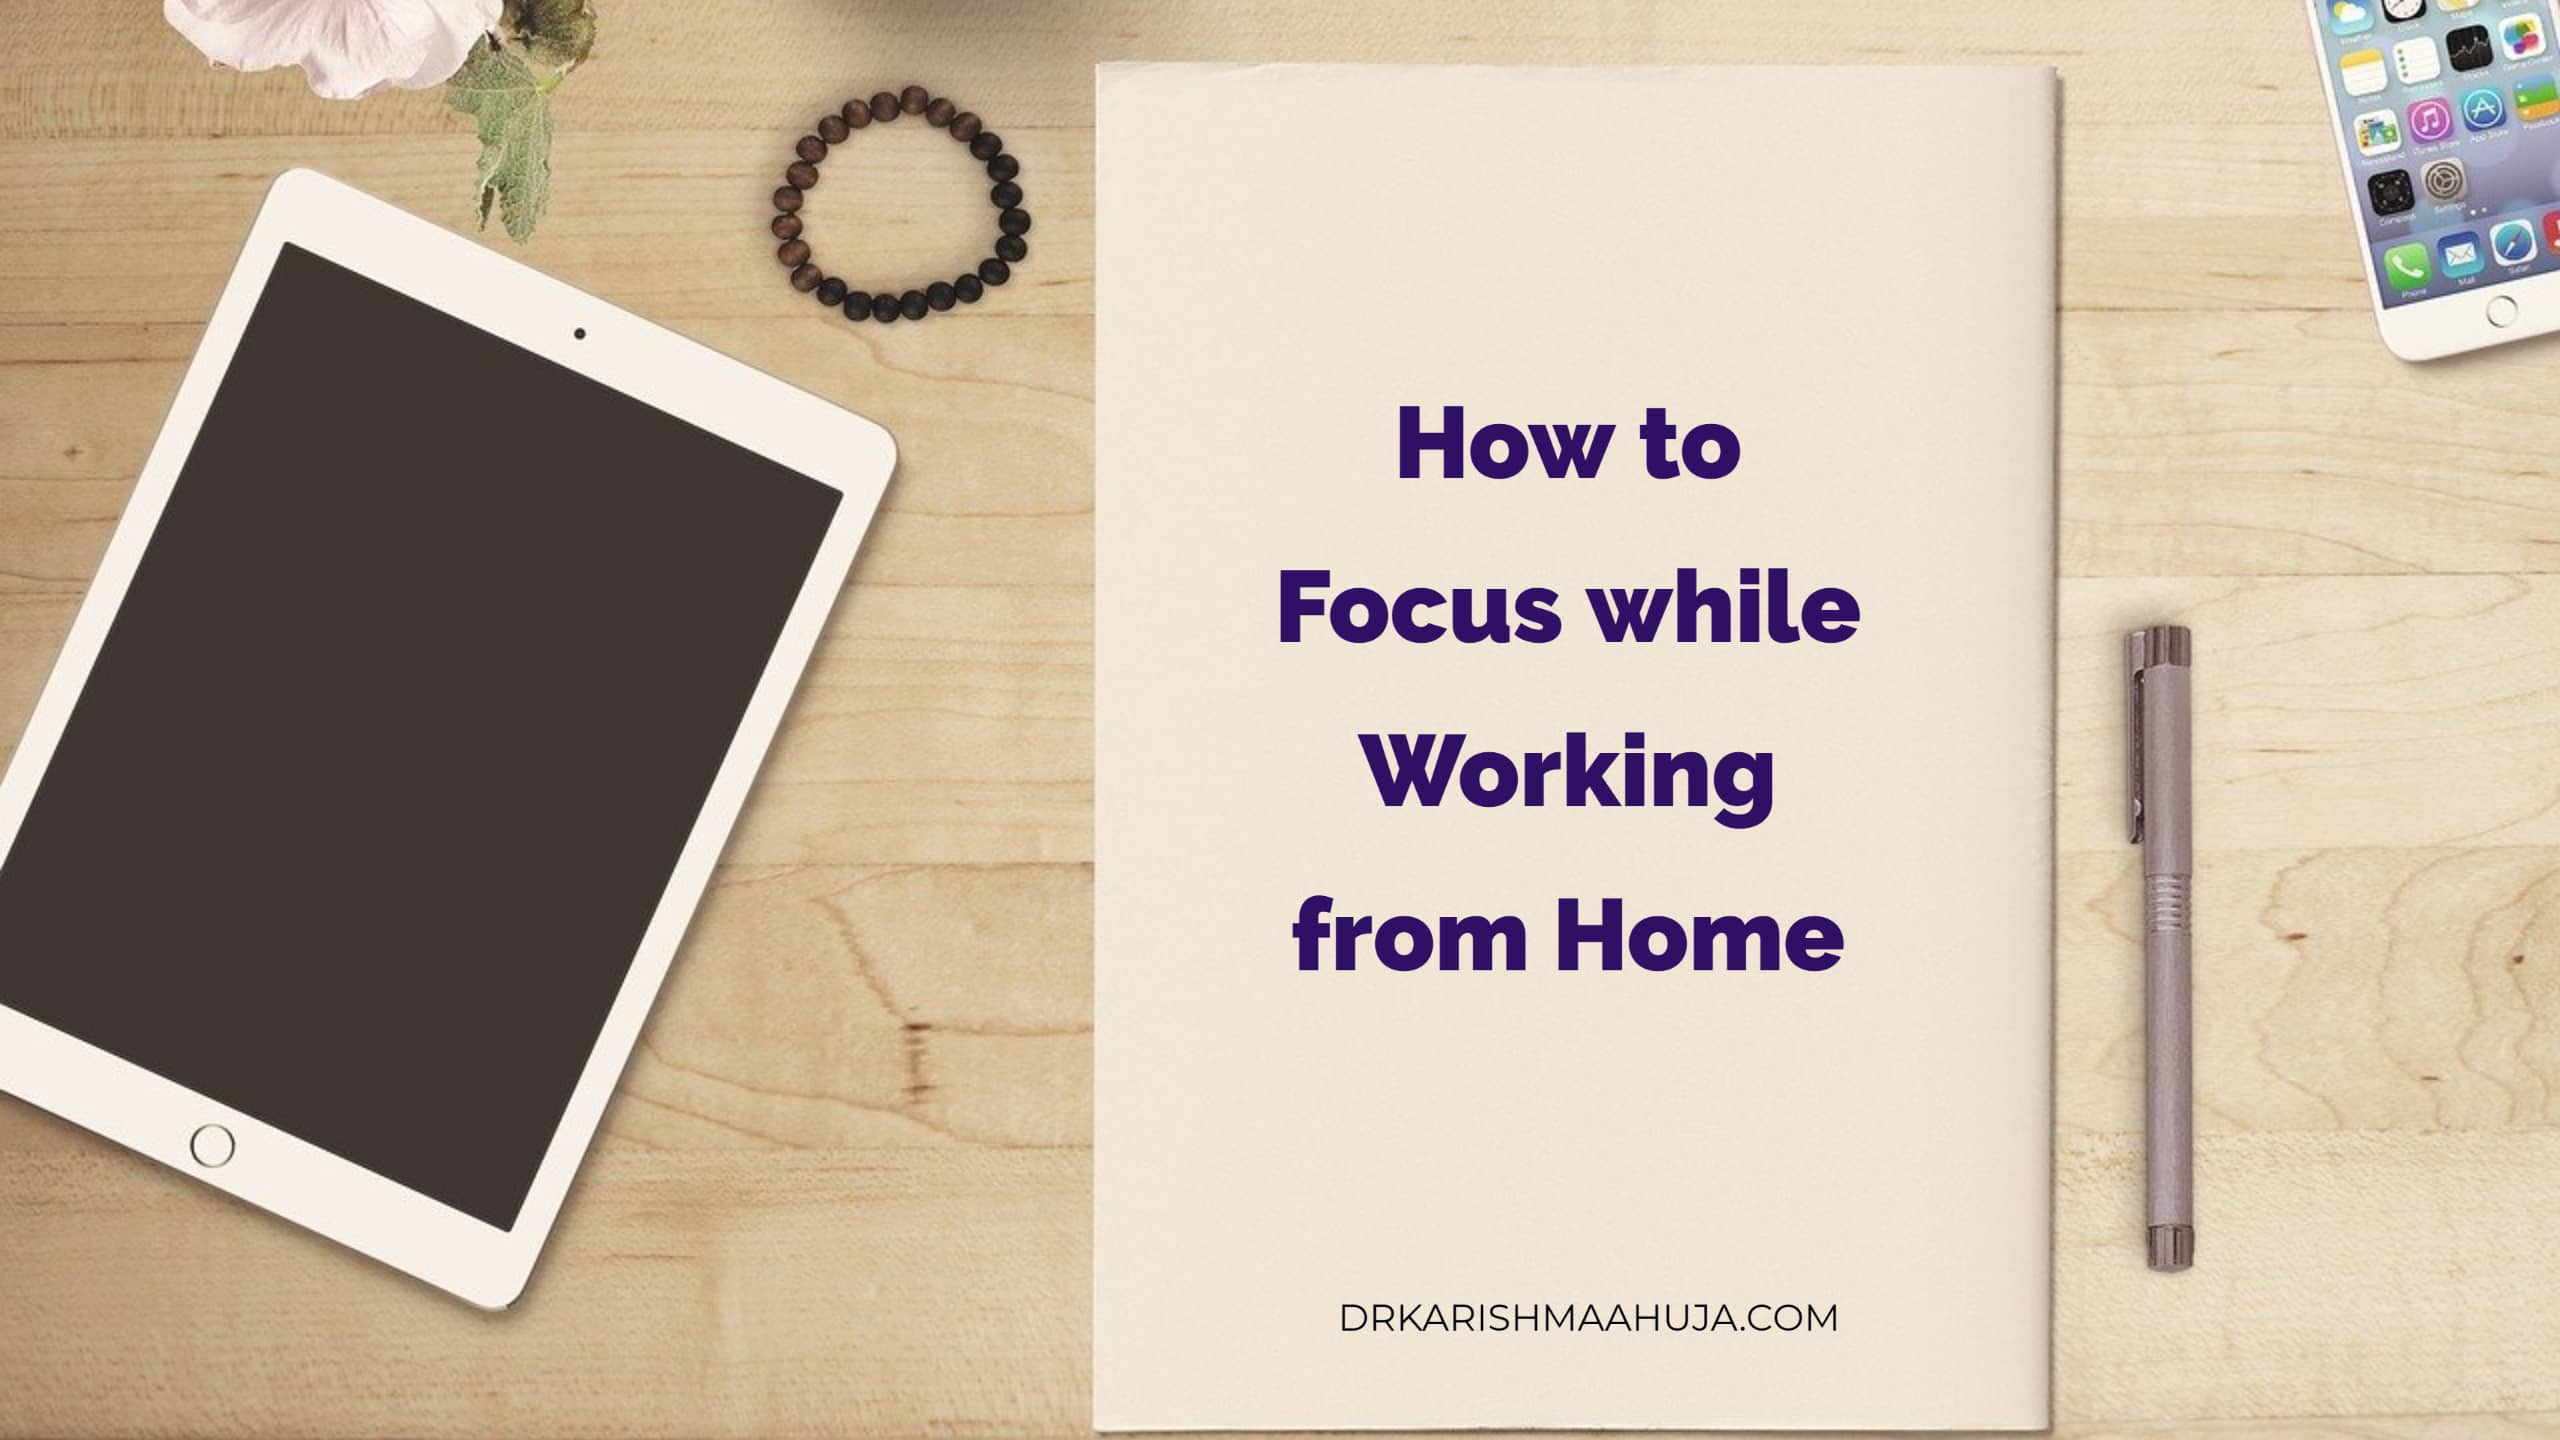 How to Stay focused while working from home : Blog post by Dr Karishma Ahuja